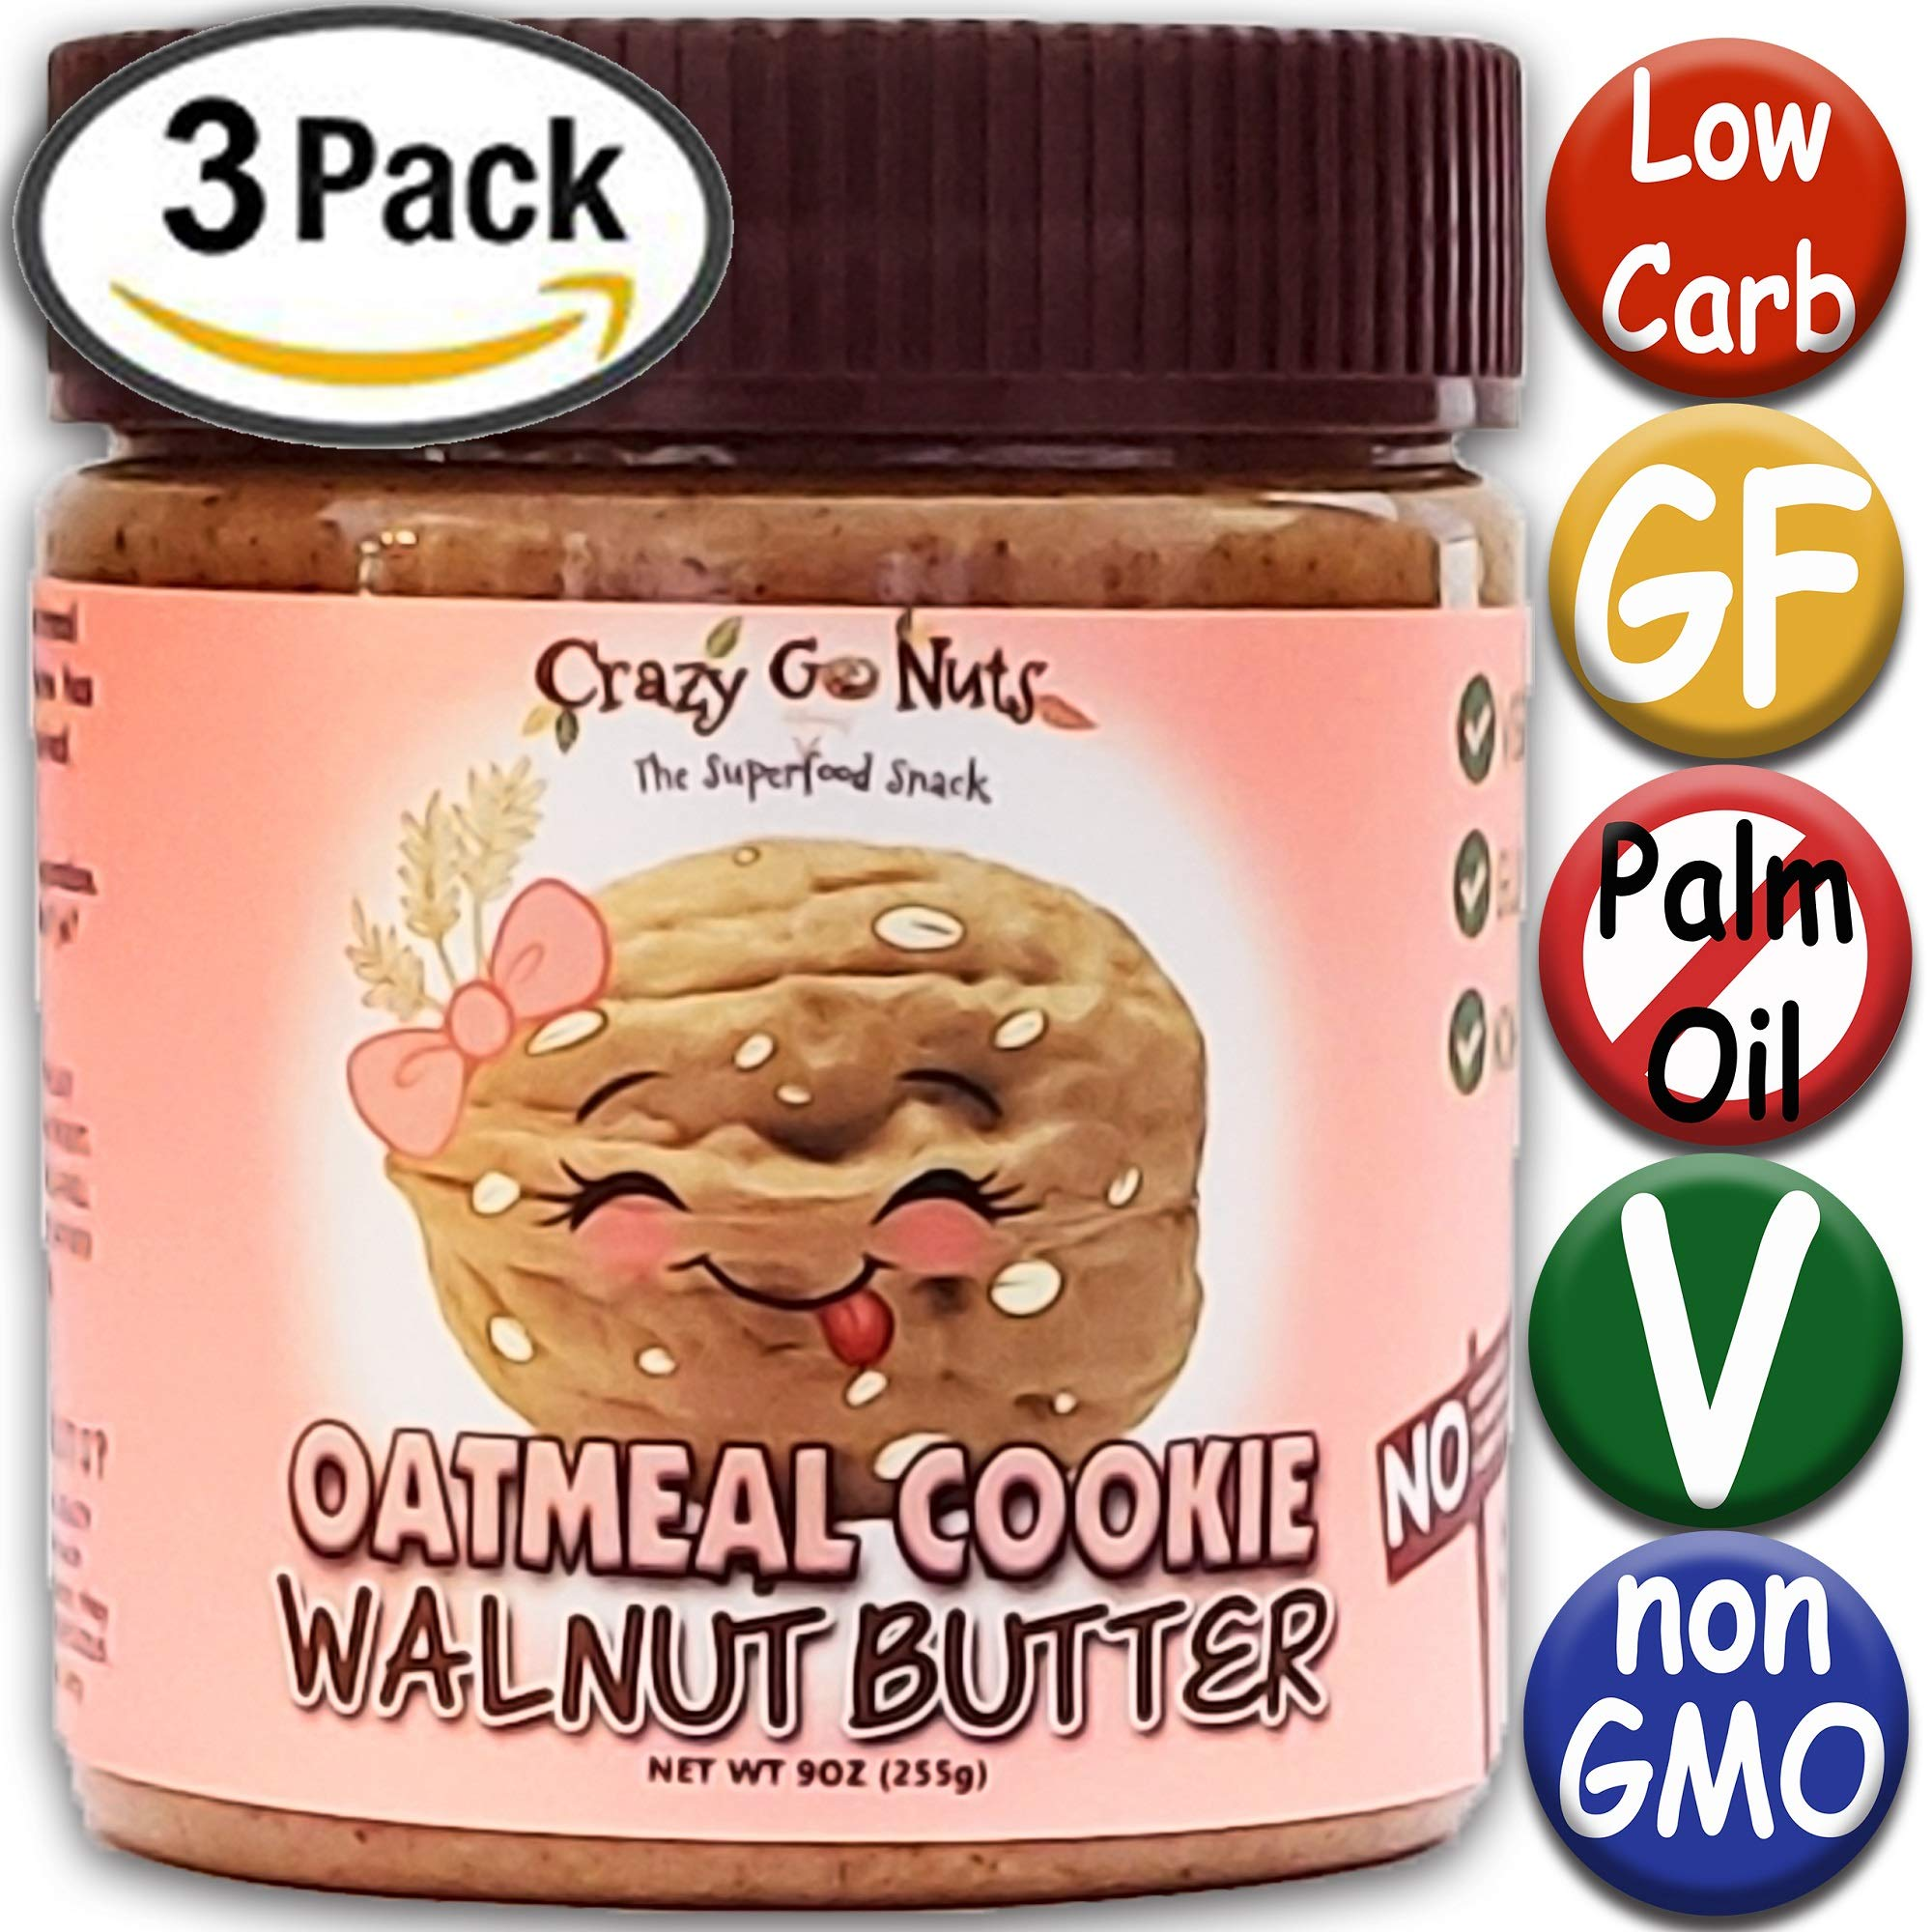 Crazy Go Nuts Flavored Walnut Butter & Healthy Snacks: Gluten Free, Vegan, Low Carb, Non GMO + Keto Snacks, 9oz 3 pack - Oatmeal Cookie by Crazy Go Nuts